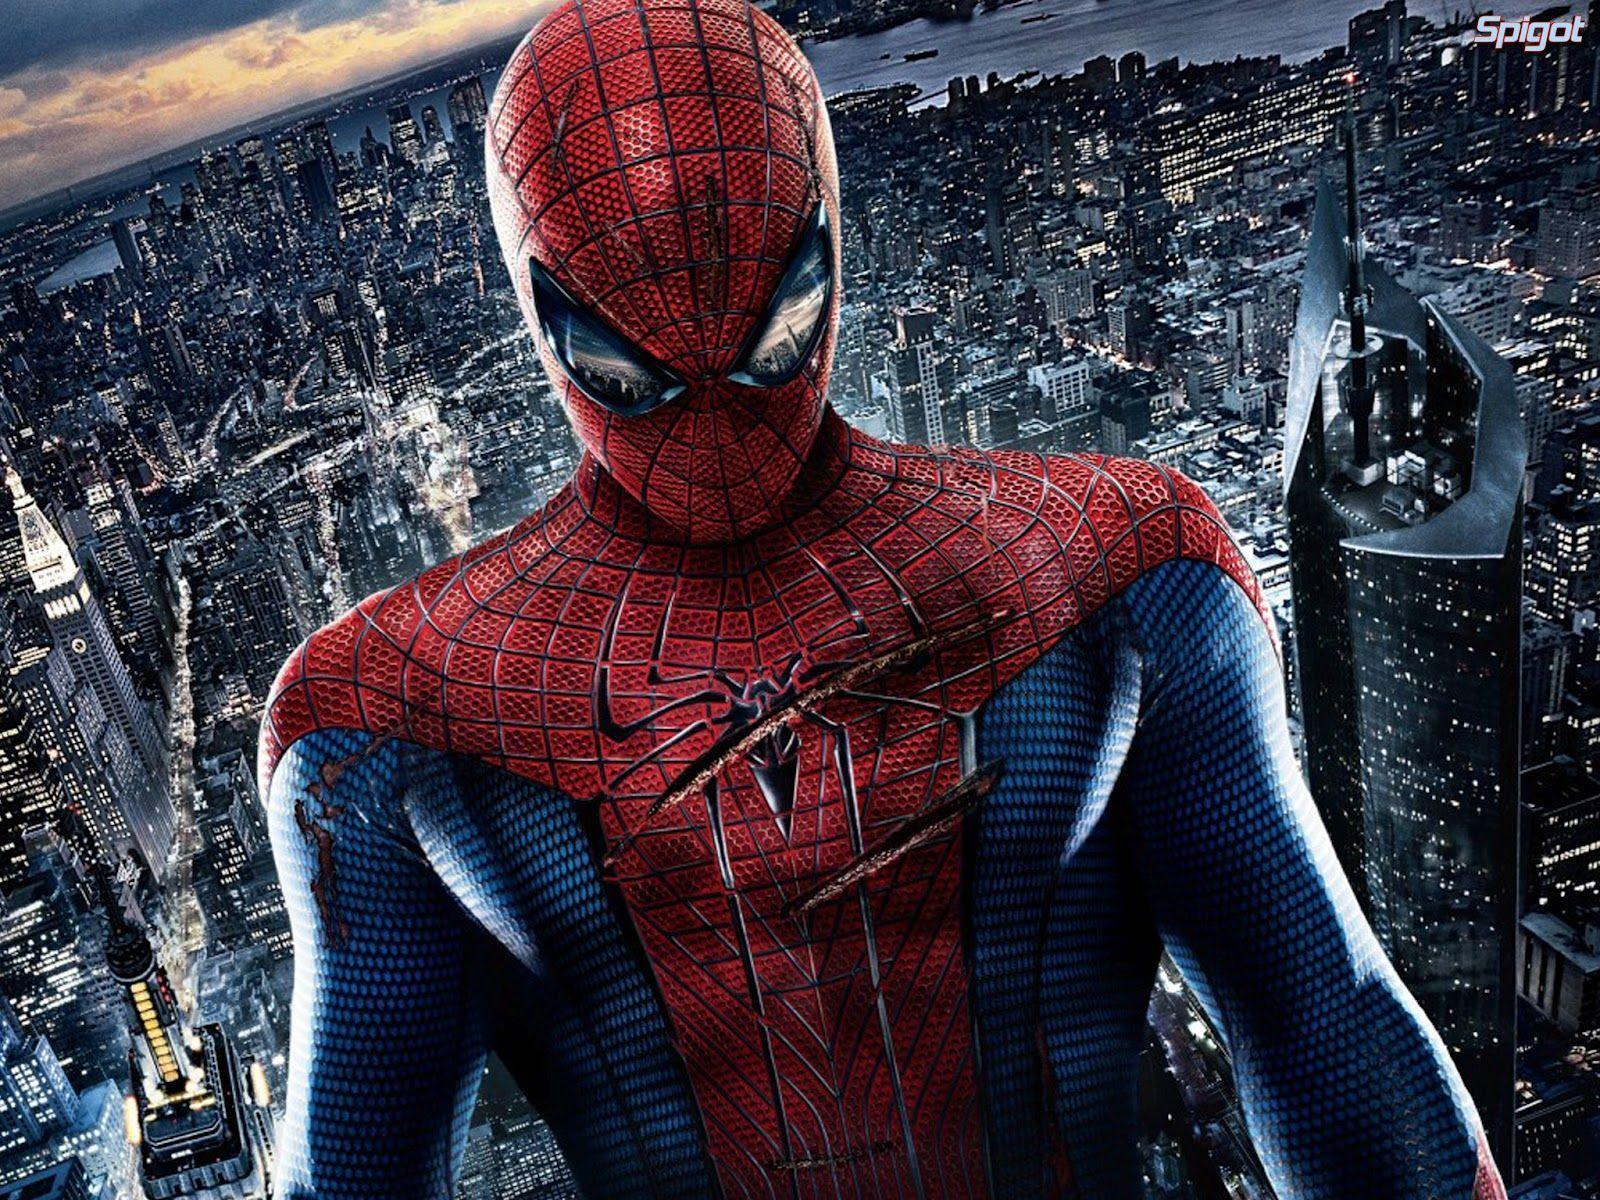 Spiderman Hd Background Wallpaper | Wallpaper Download